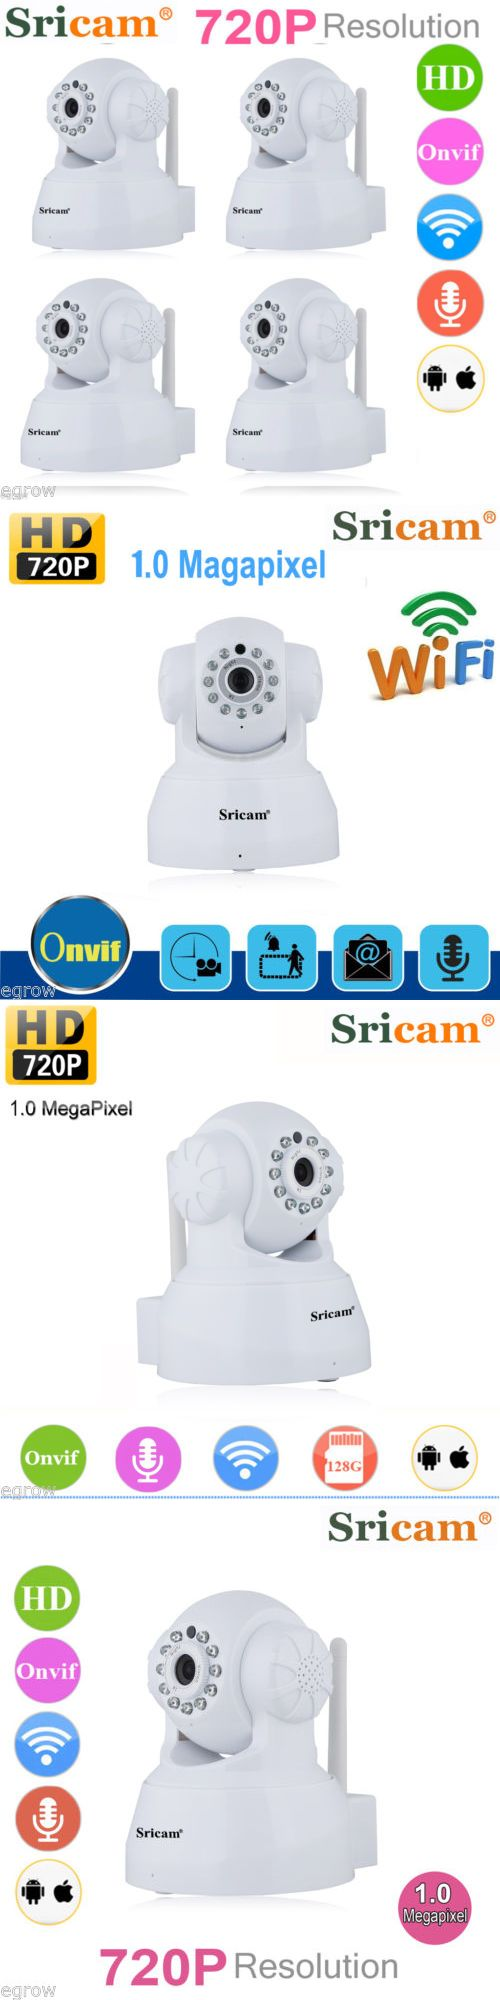 Security Cameras: Sricam 720P Hd 4 Ip Wireless Wifi Ir Night Vision Home Security Camera System -> BUY IT NOW ONLY: $99.99 on eBay!